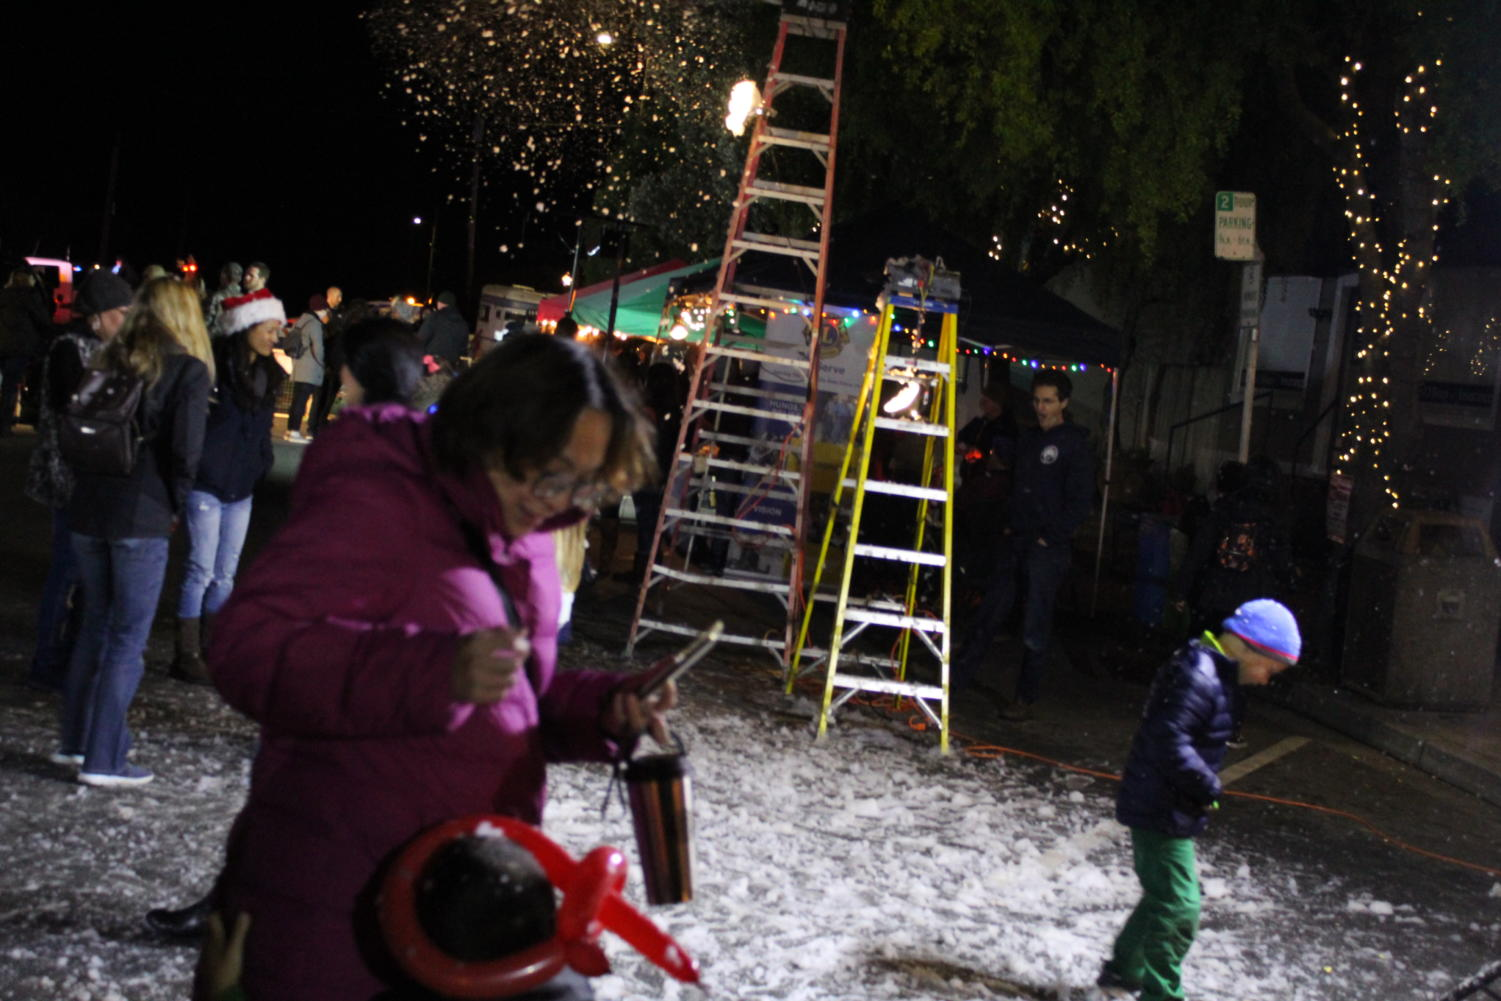 People play in the fake snow pumped out by snow machines.